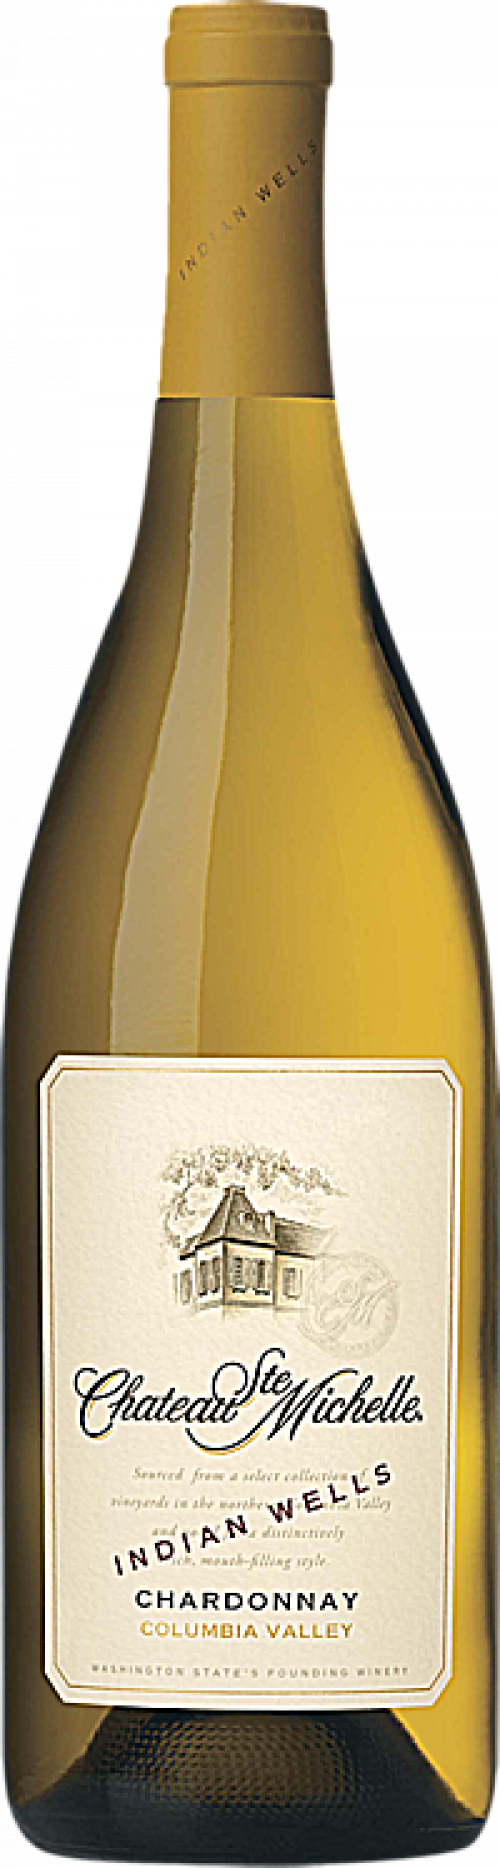 2017 Chateau Ste Michelle Indian Wells Chardonnay 750Ml